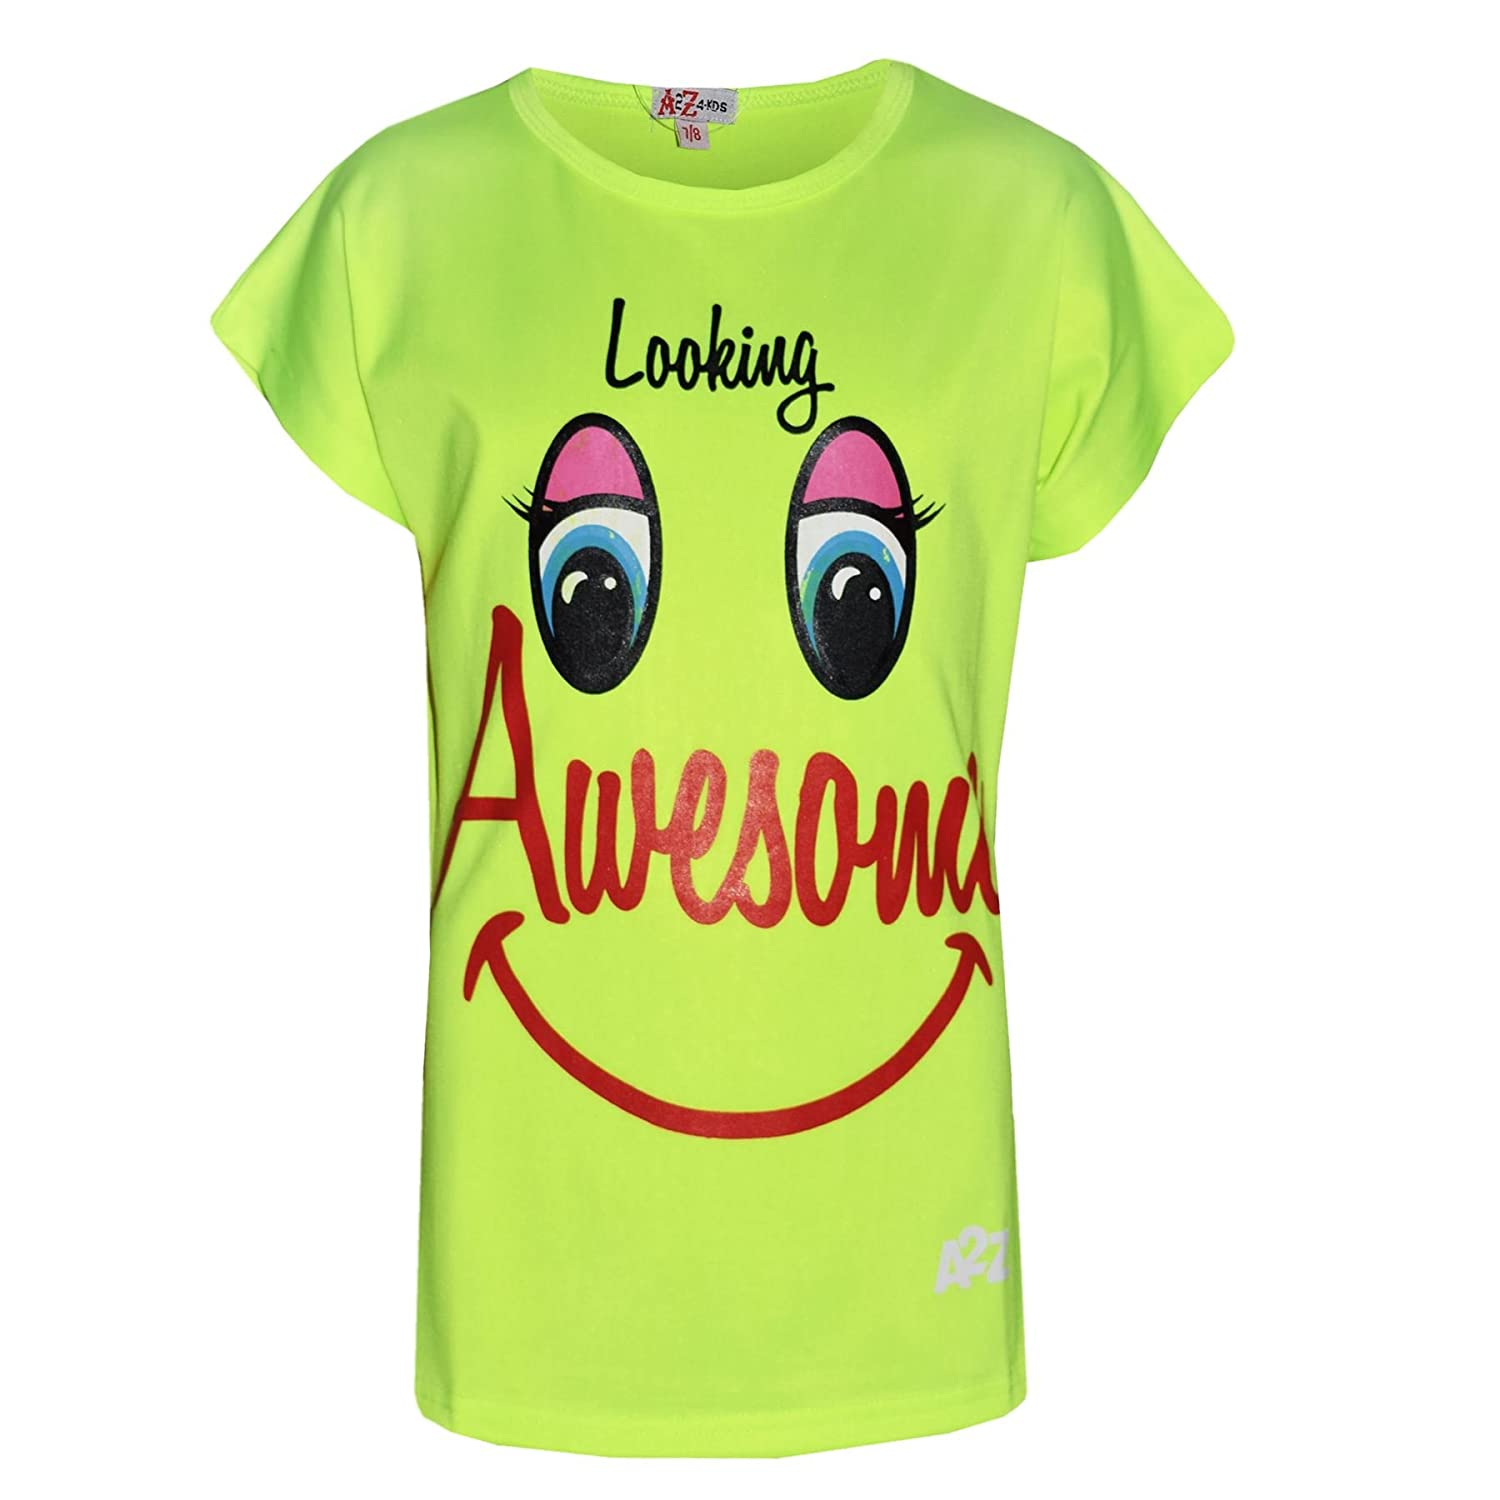 A2Z 4 Kids® Girls Top Looking Awesome Print Short Sleeves T Shirts